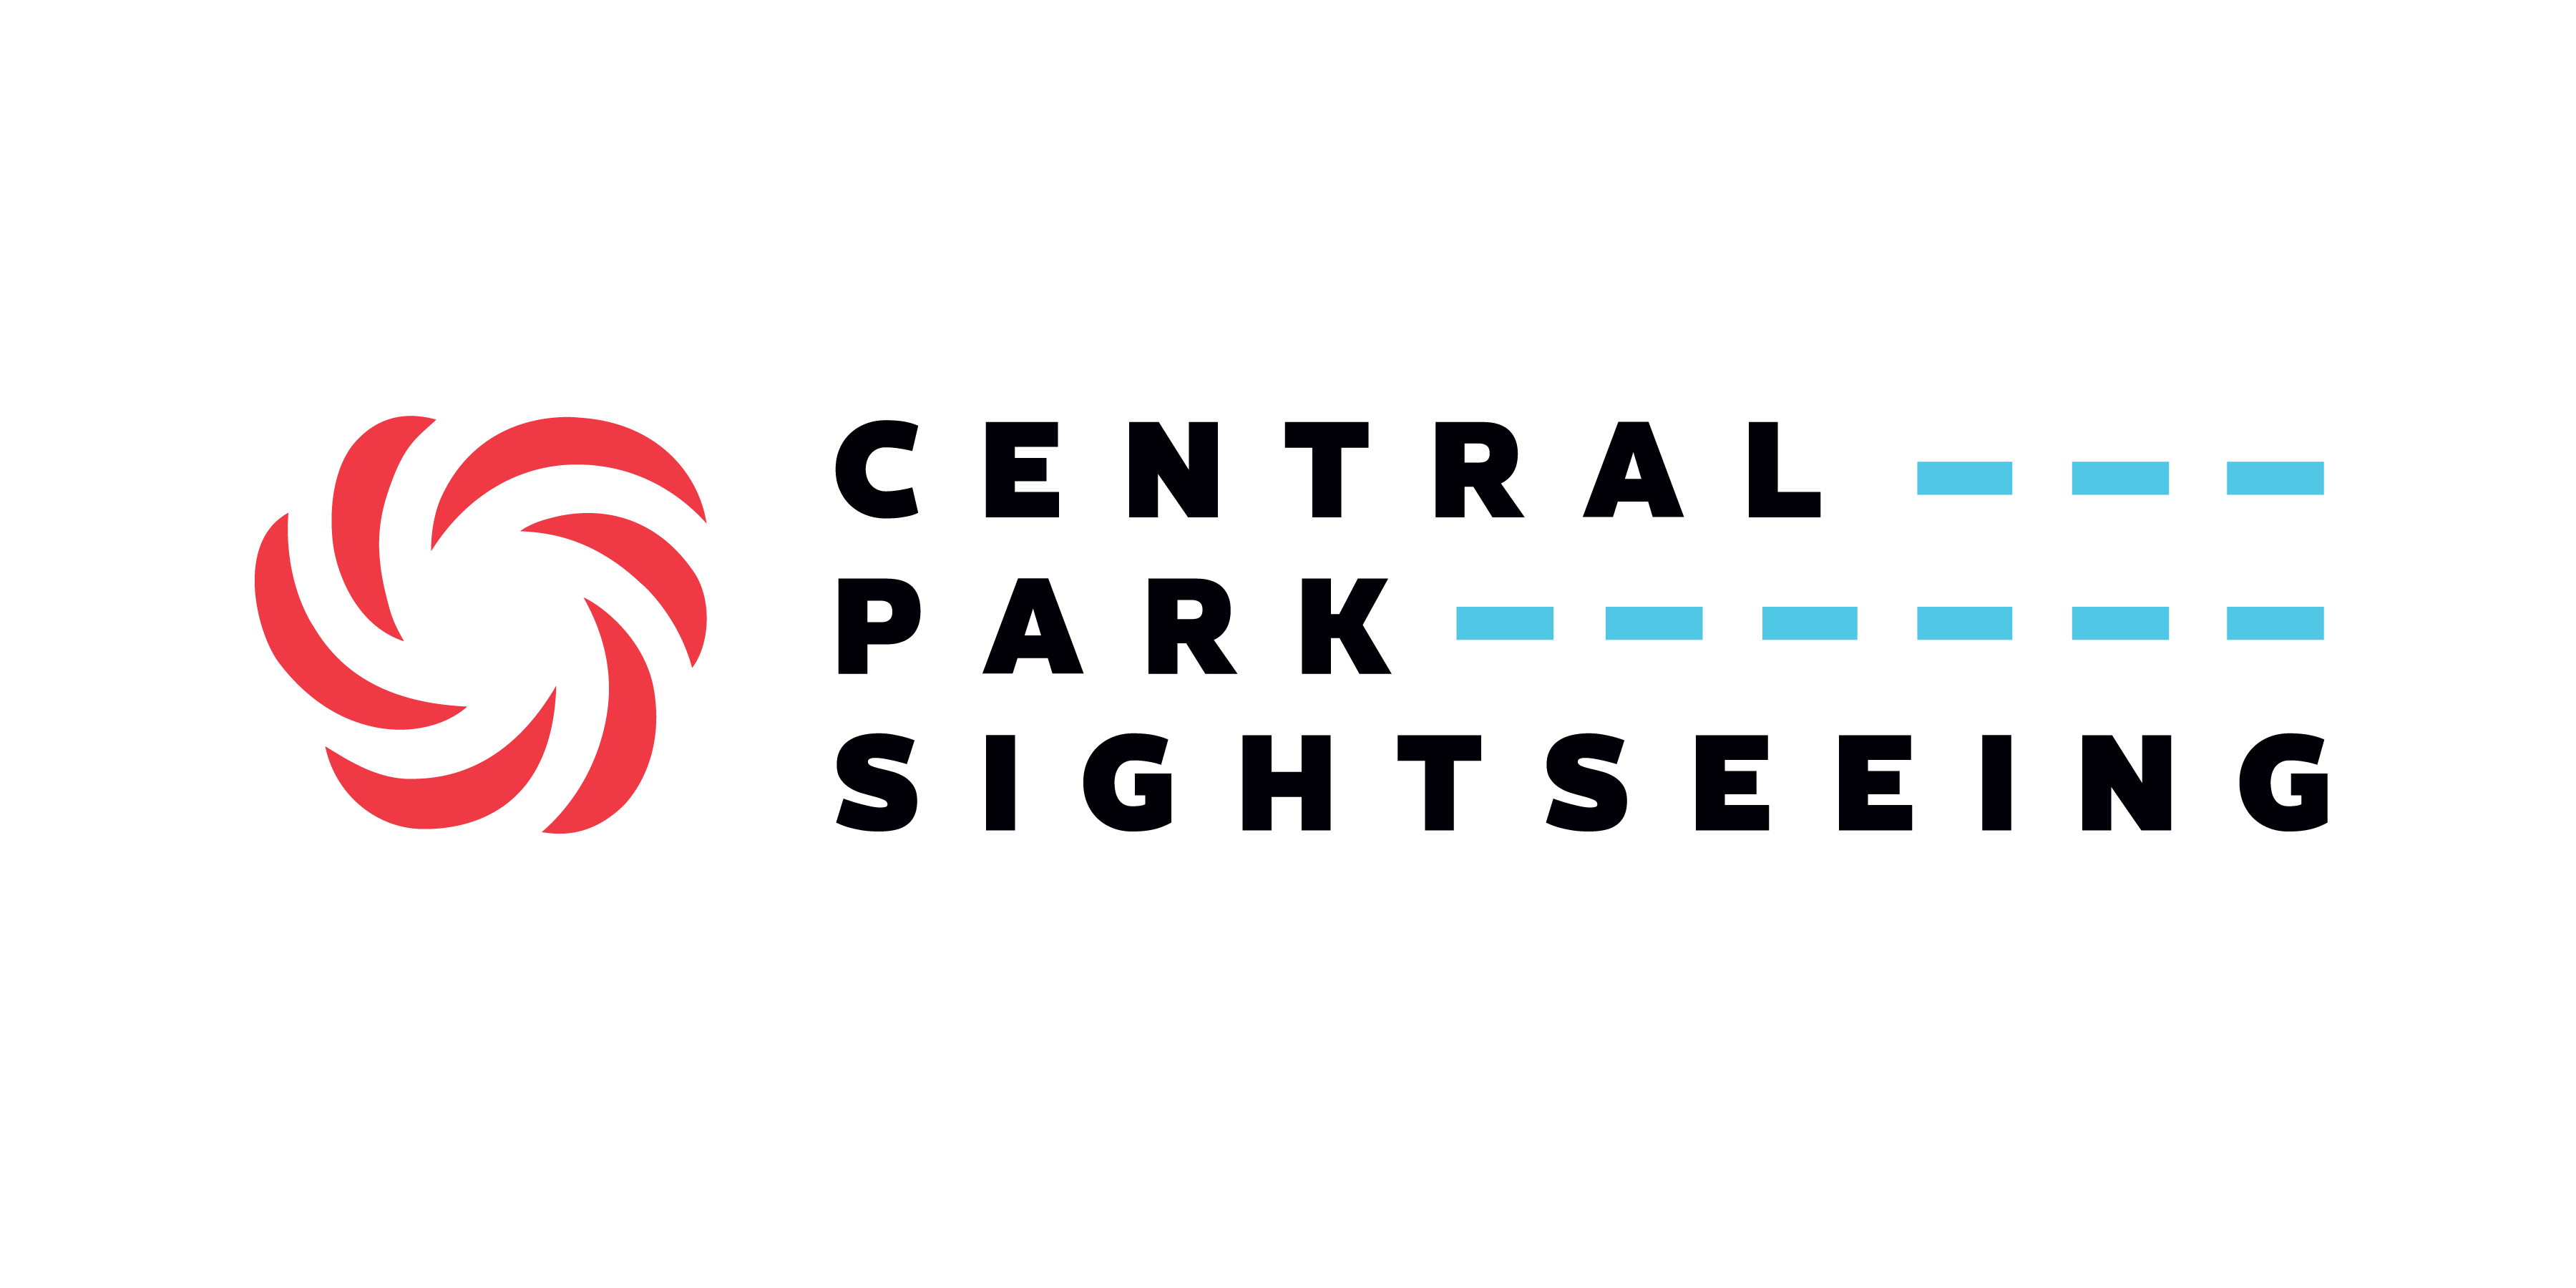 Central Park Sightseeing affiliate program